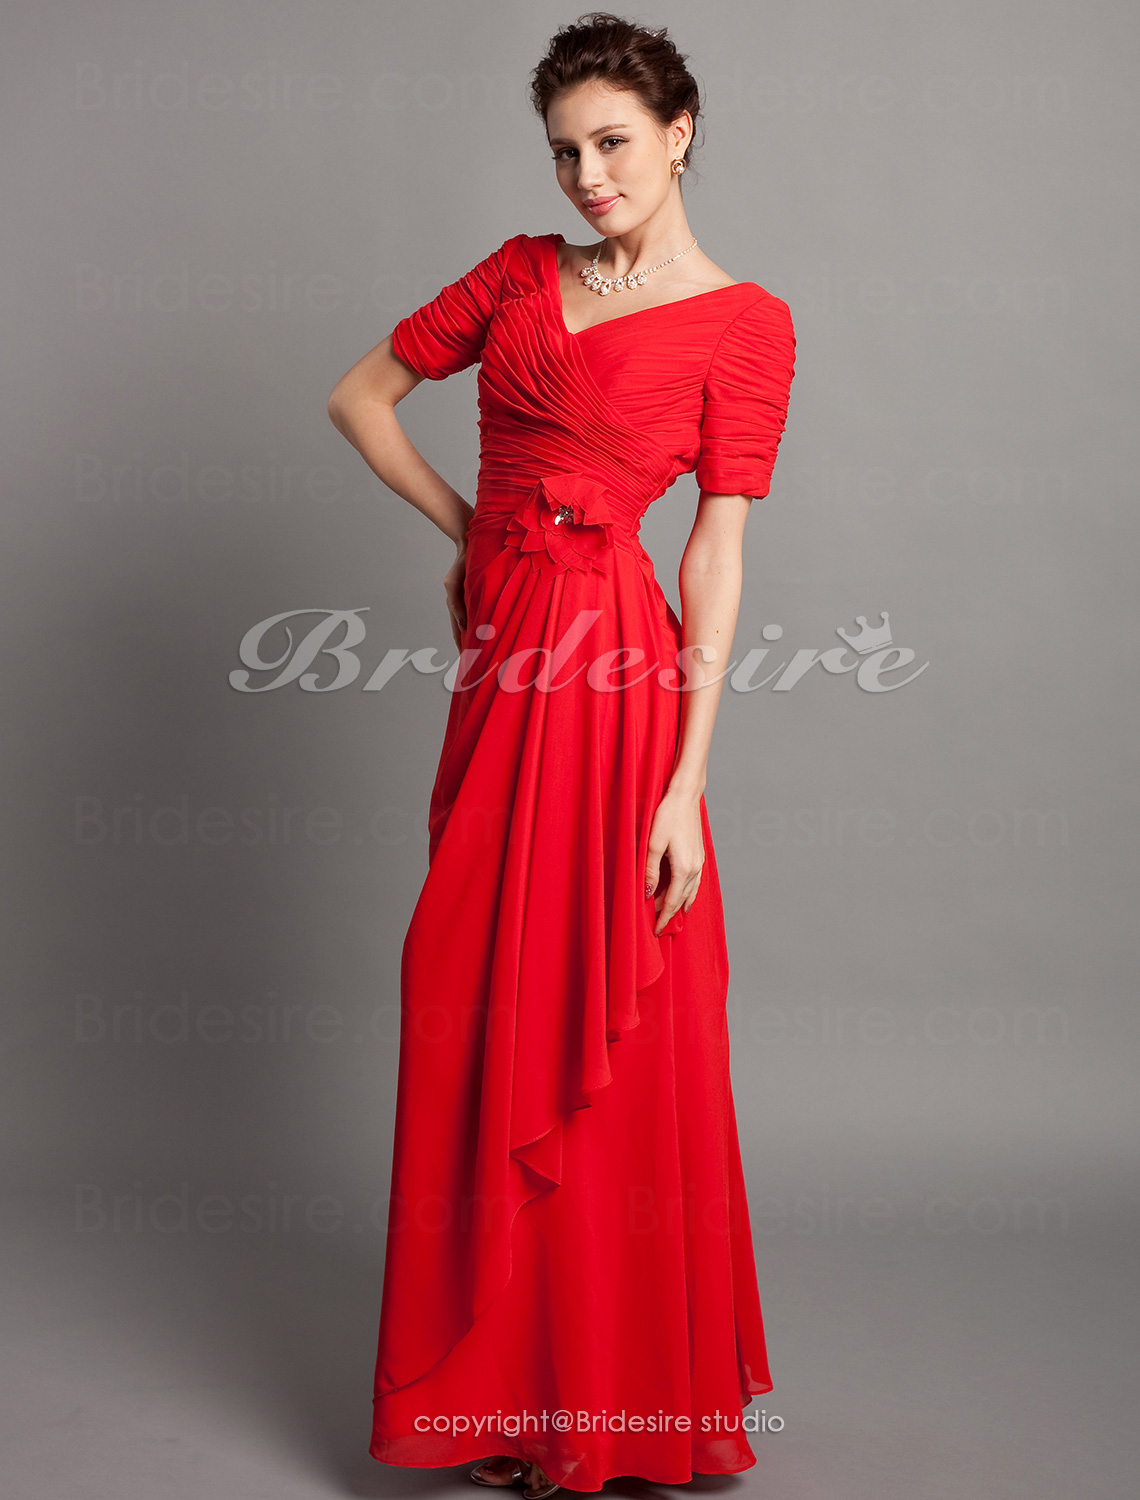 Sheath/ Column Chiffon Floor-length One Shoulder Bridesmaid Dress